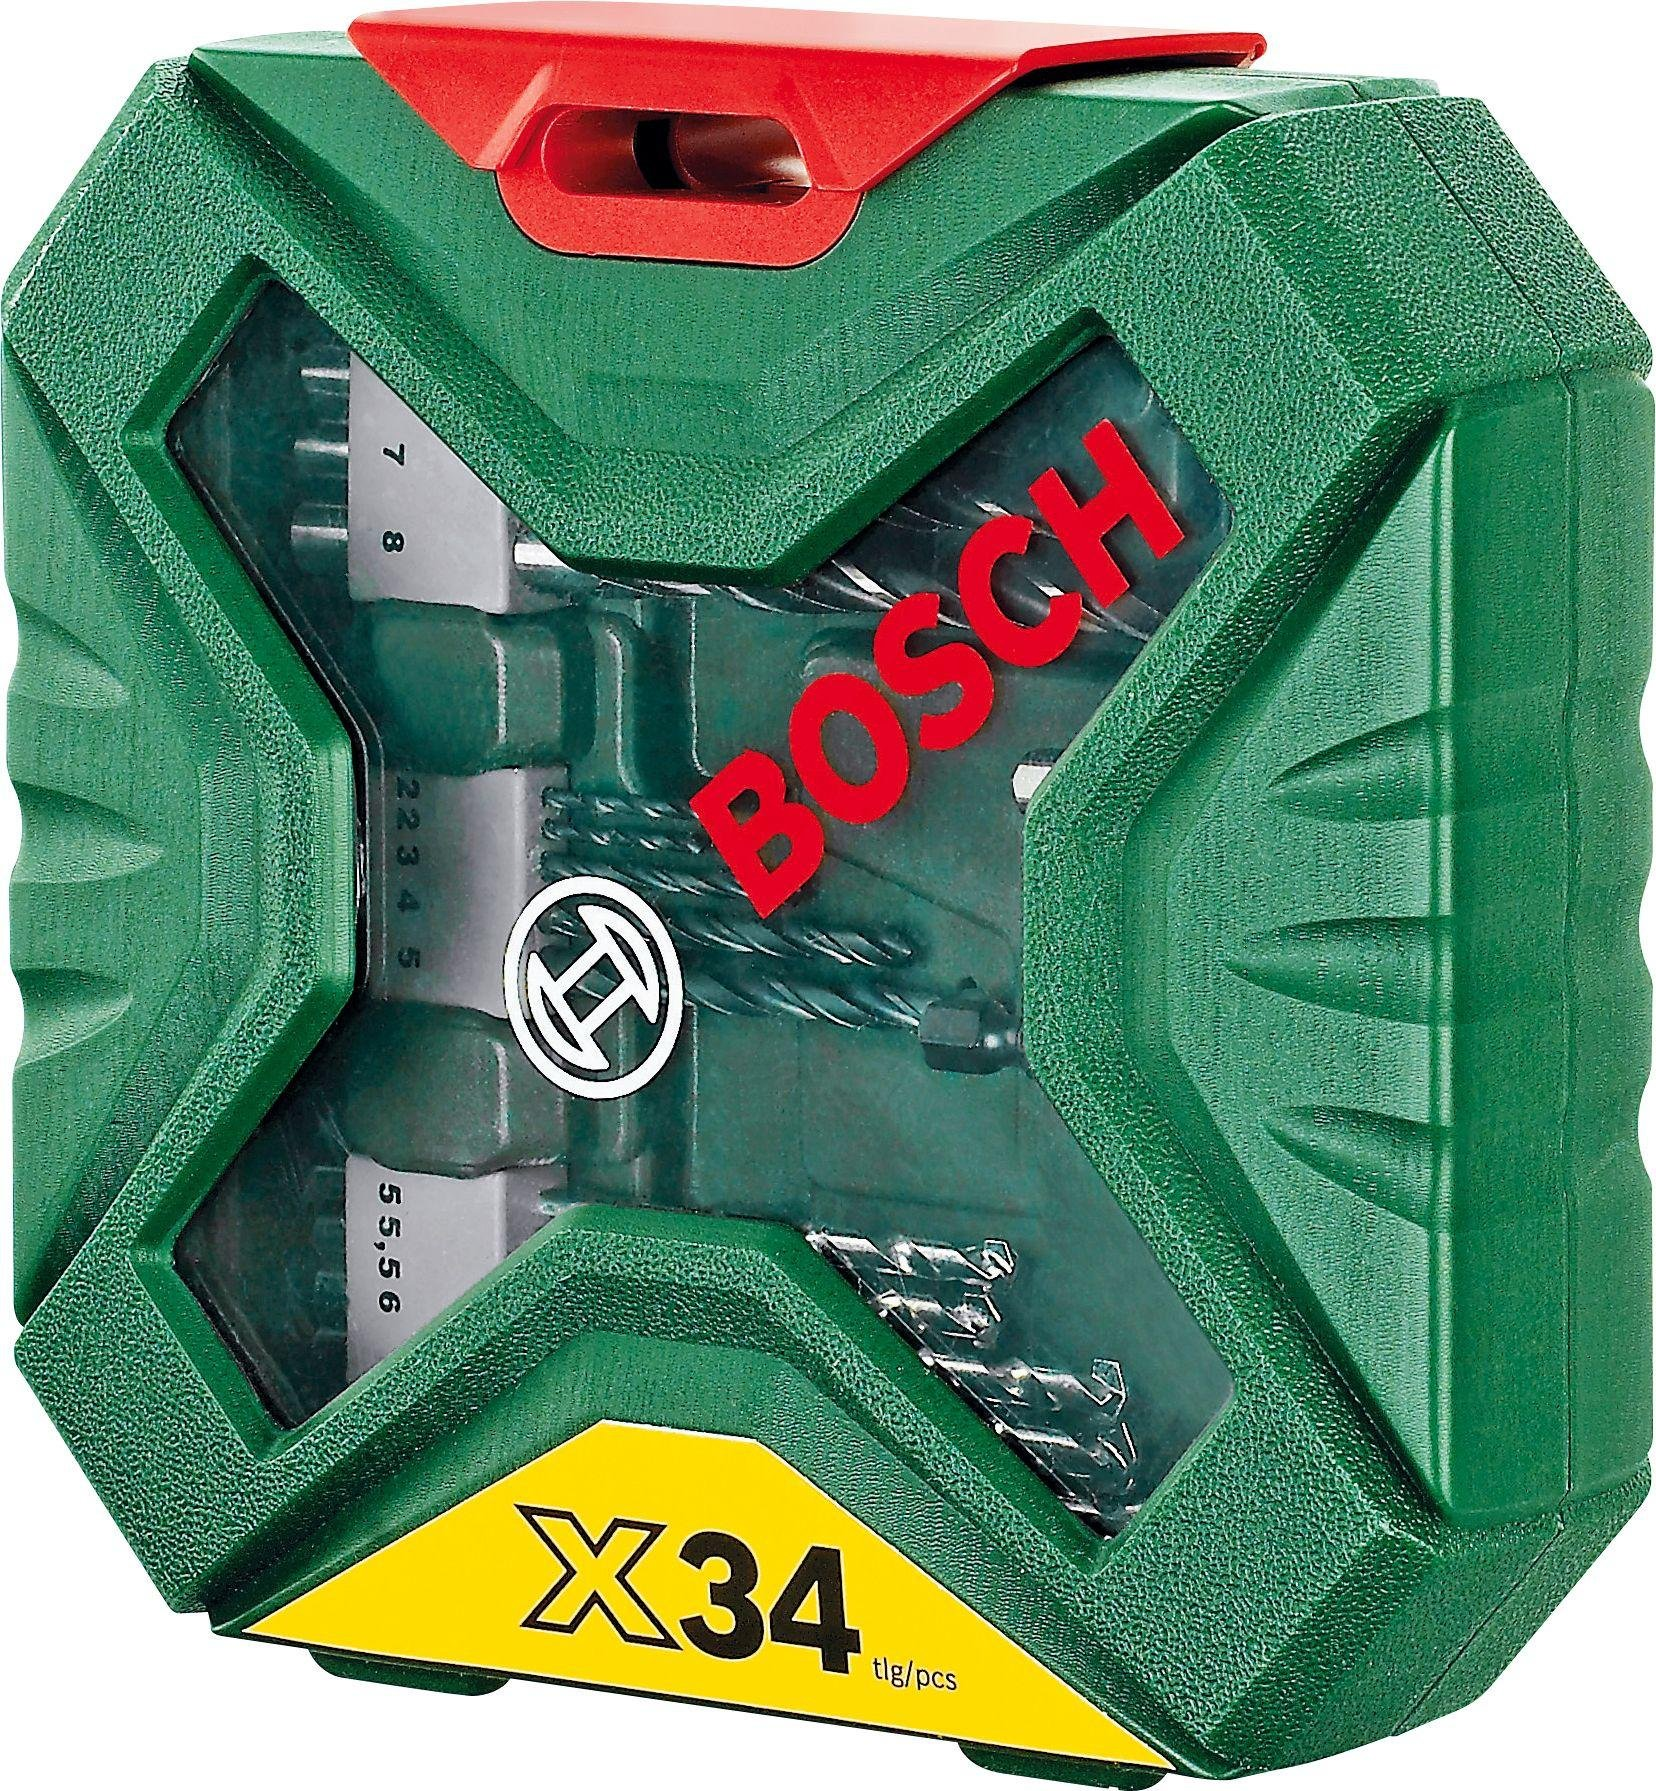 Image of Bosch - 34 Piece X-Line Classic Drill and Screwdriver Bit Set